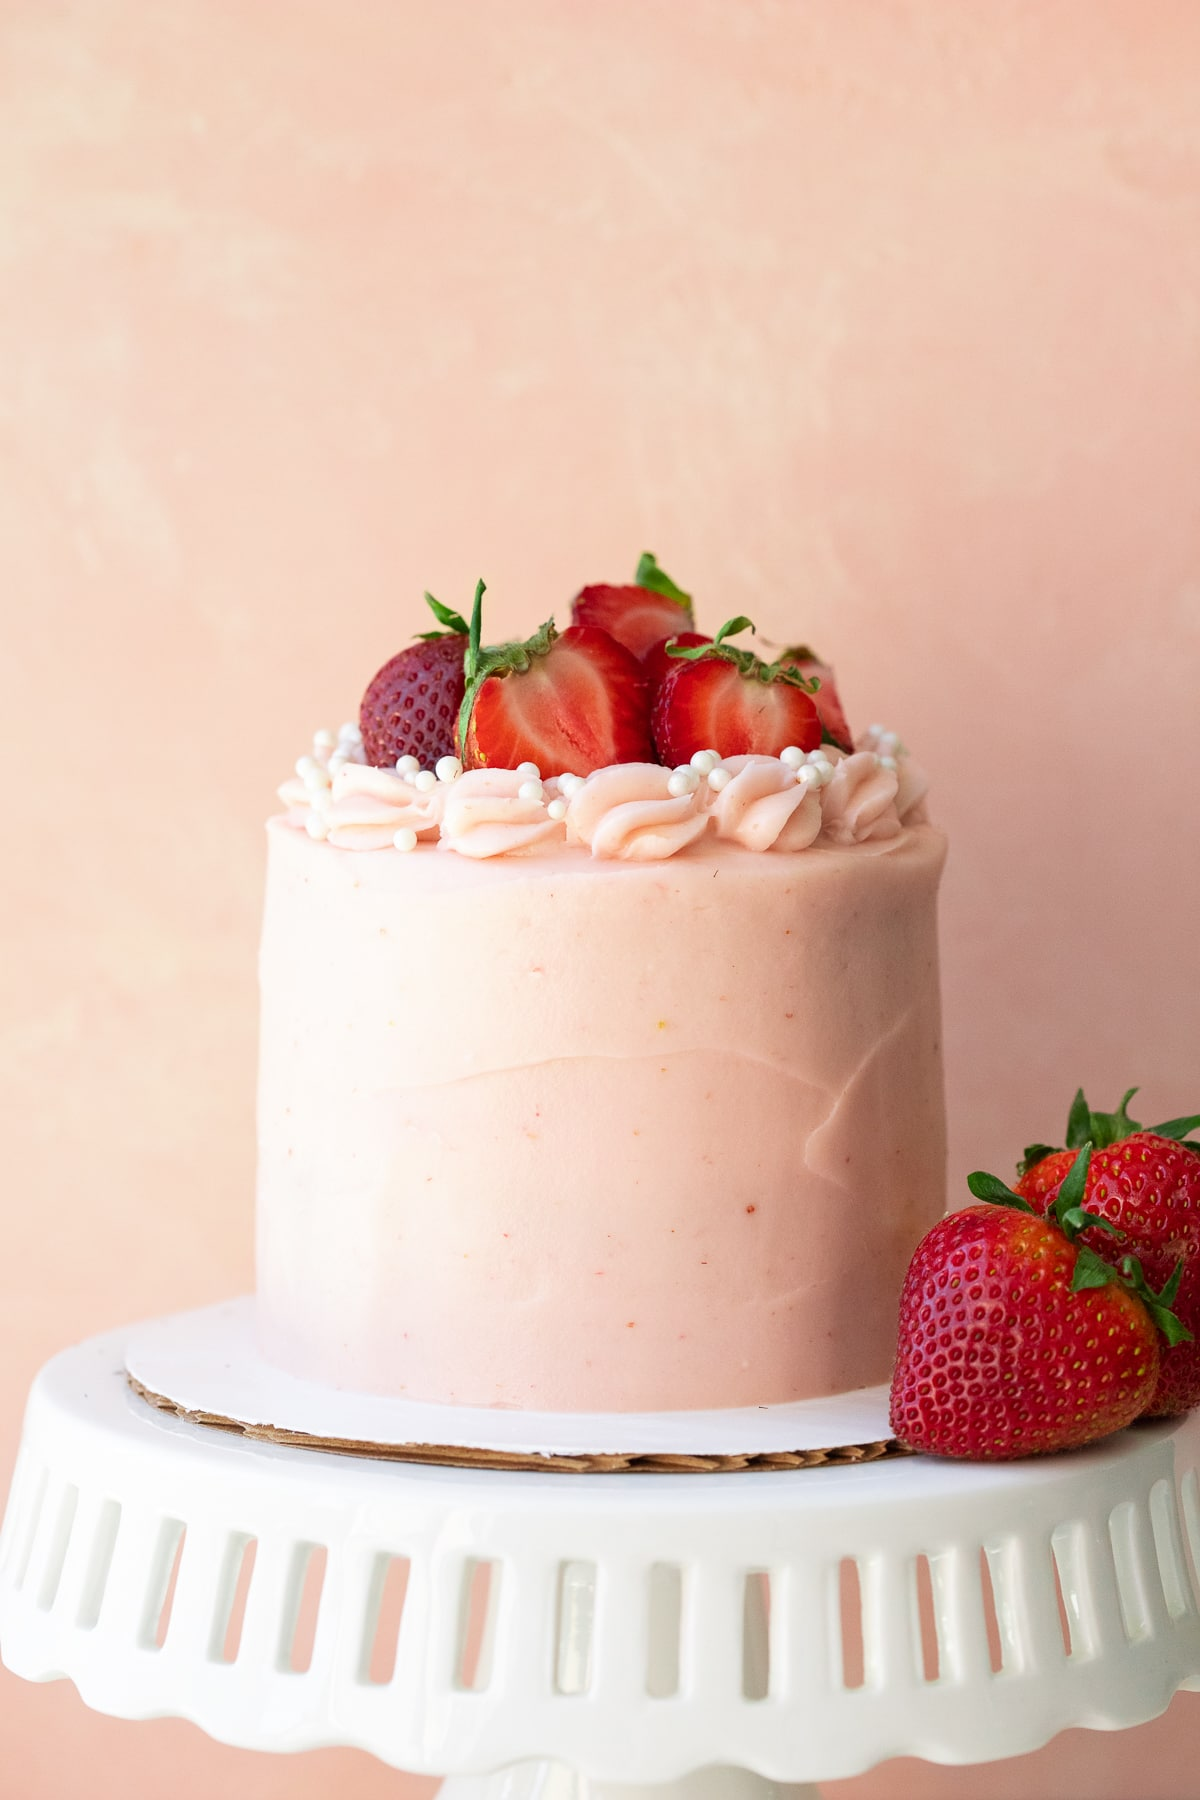 Front-facing view of cake on a white stand with strawberries to the side, against a pink backdrop.